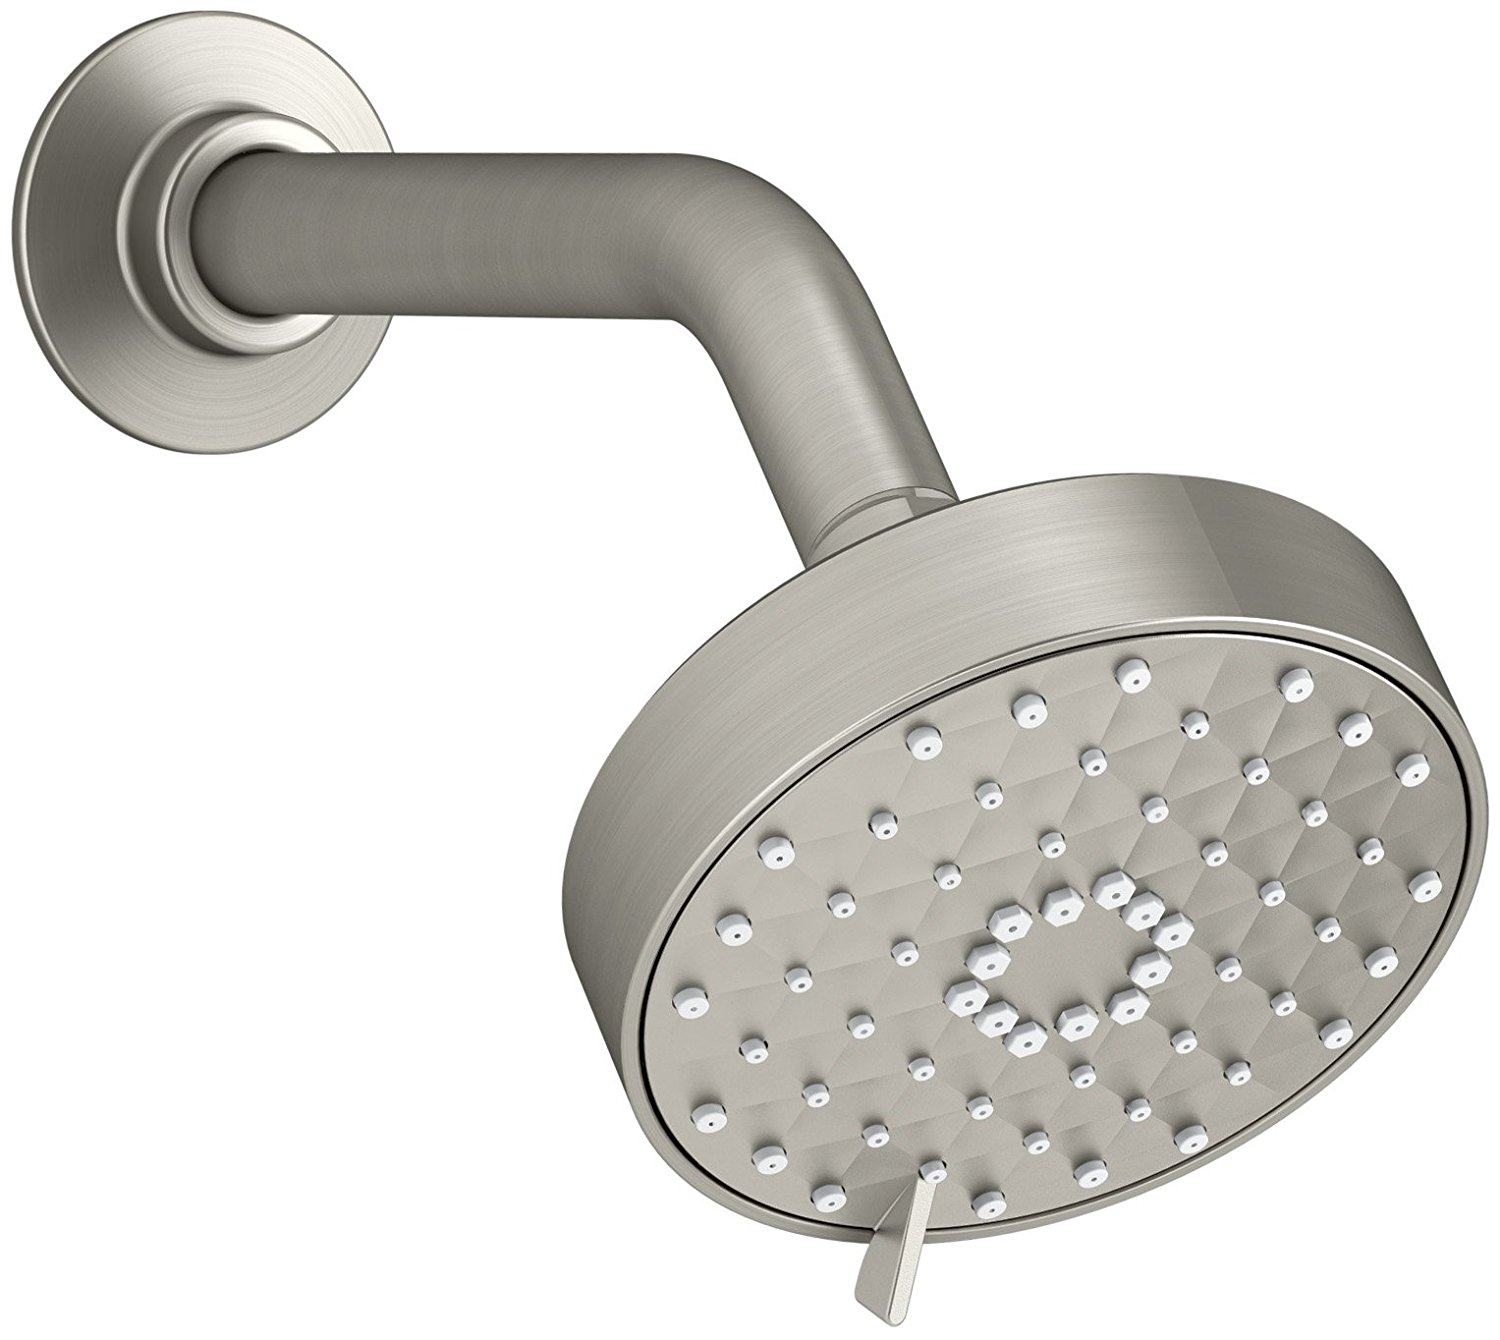 KOHLER K-72419-BN Awaken G110 Multifunction Showerhead, Vibrant Brushed Nickel